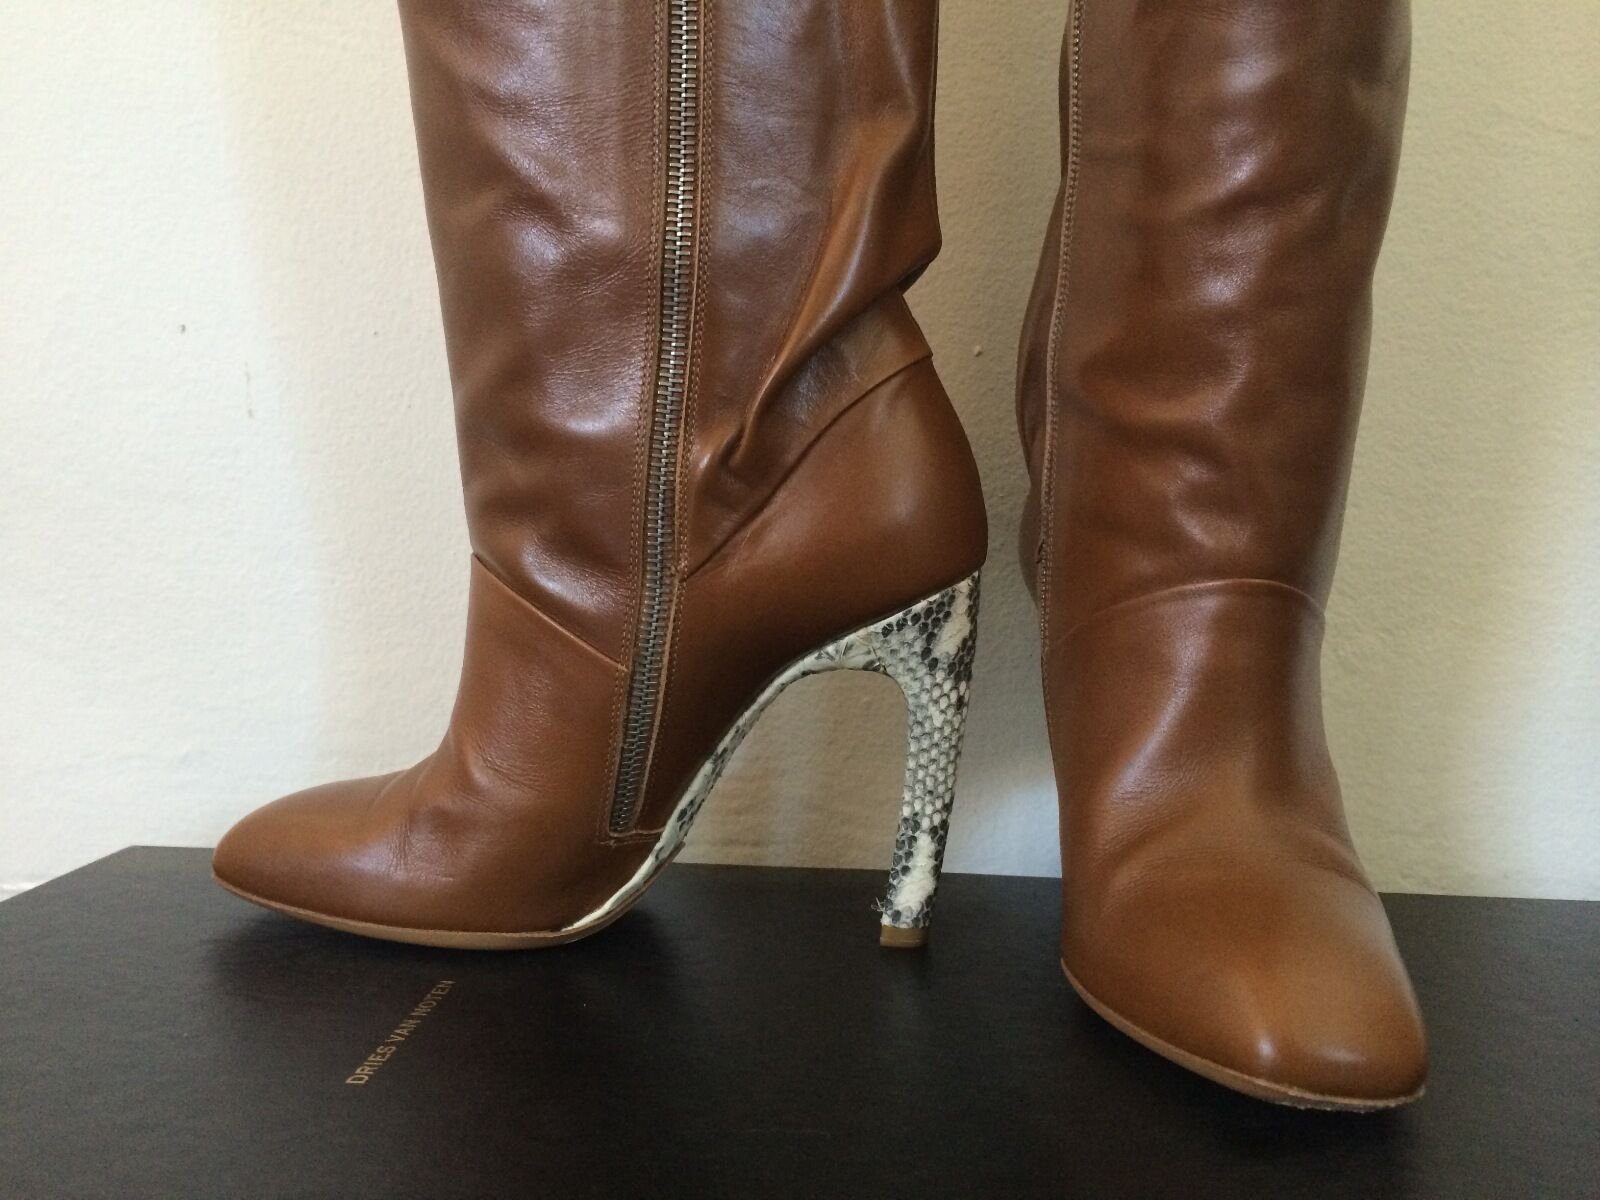 Dries 7.5 van Noten - size 7.5 Dries - Leather Knee-High Boots 0a3ebc